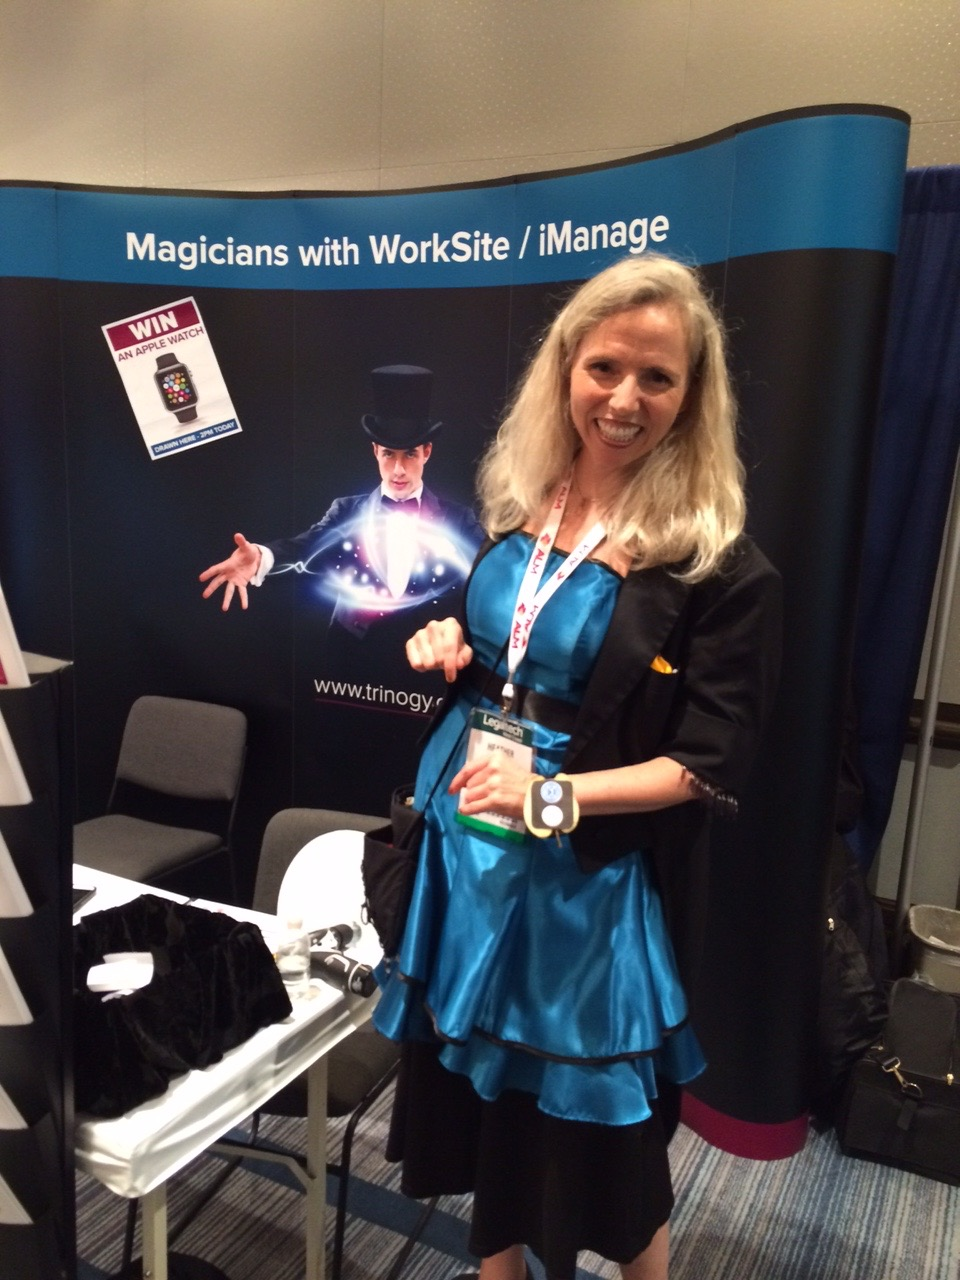 Heather_Rogers_Trade_Show_Magician.jpg